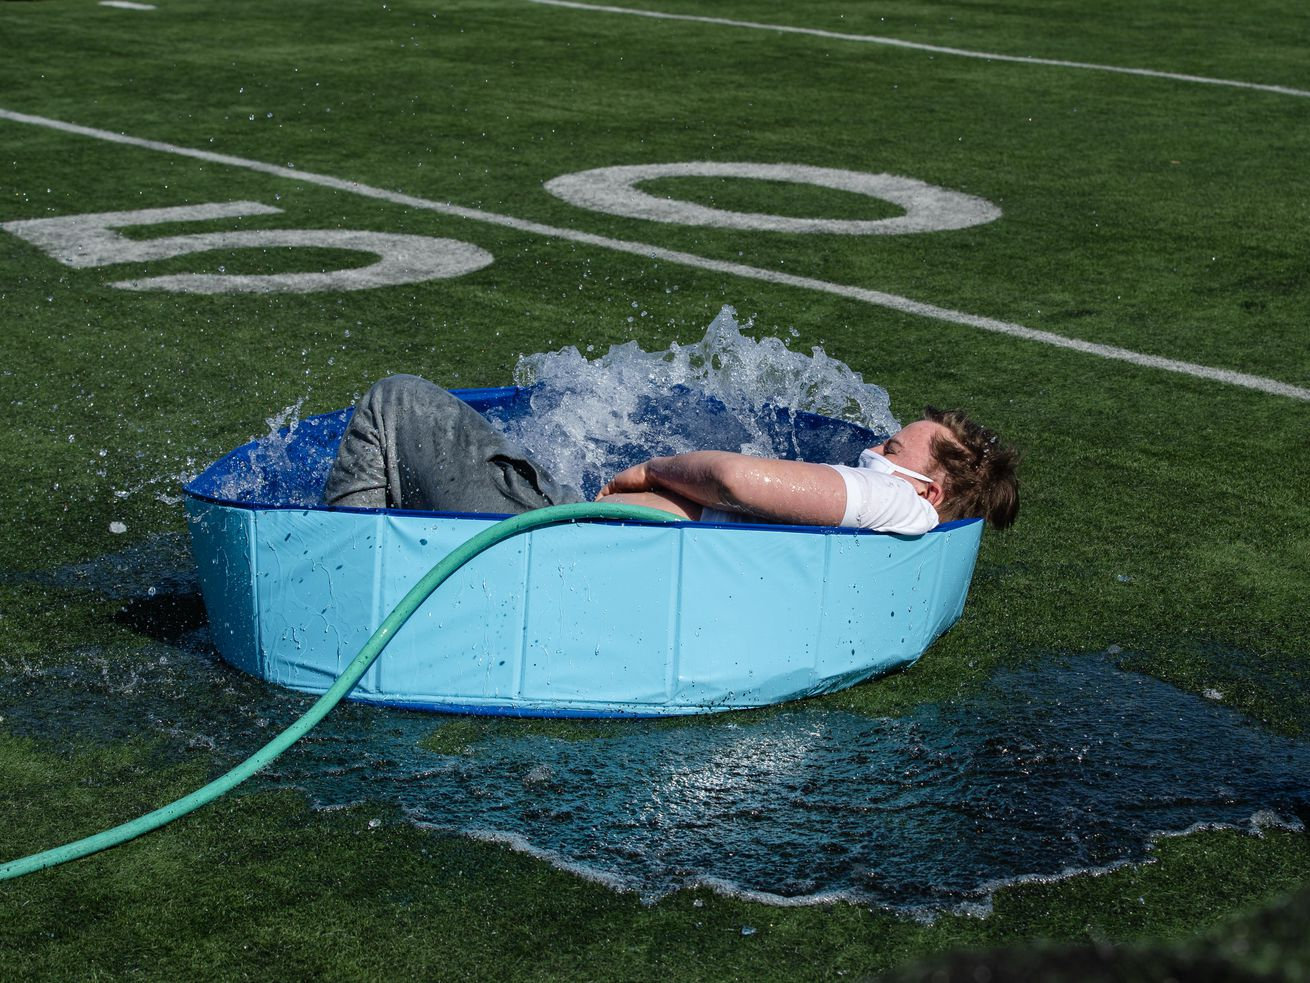 A student jumps into a wading pool filled with snow and water for St. Patrick High School's version of the Polar Plunge.